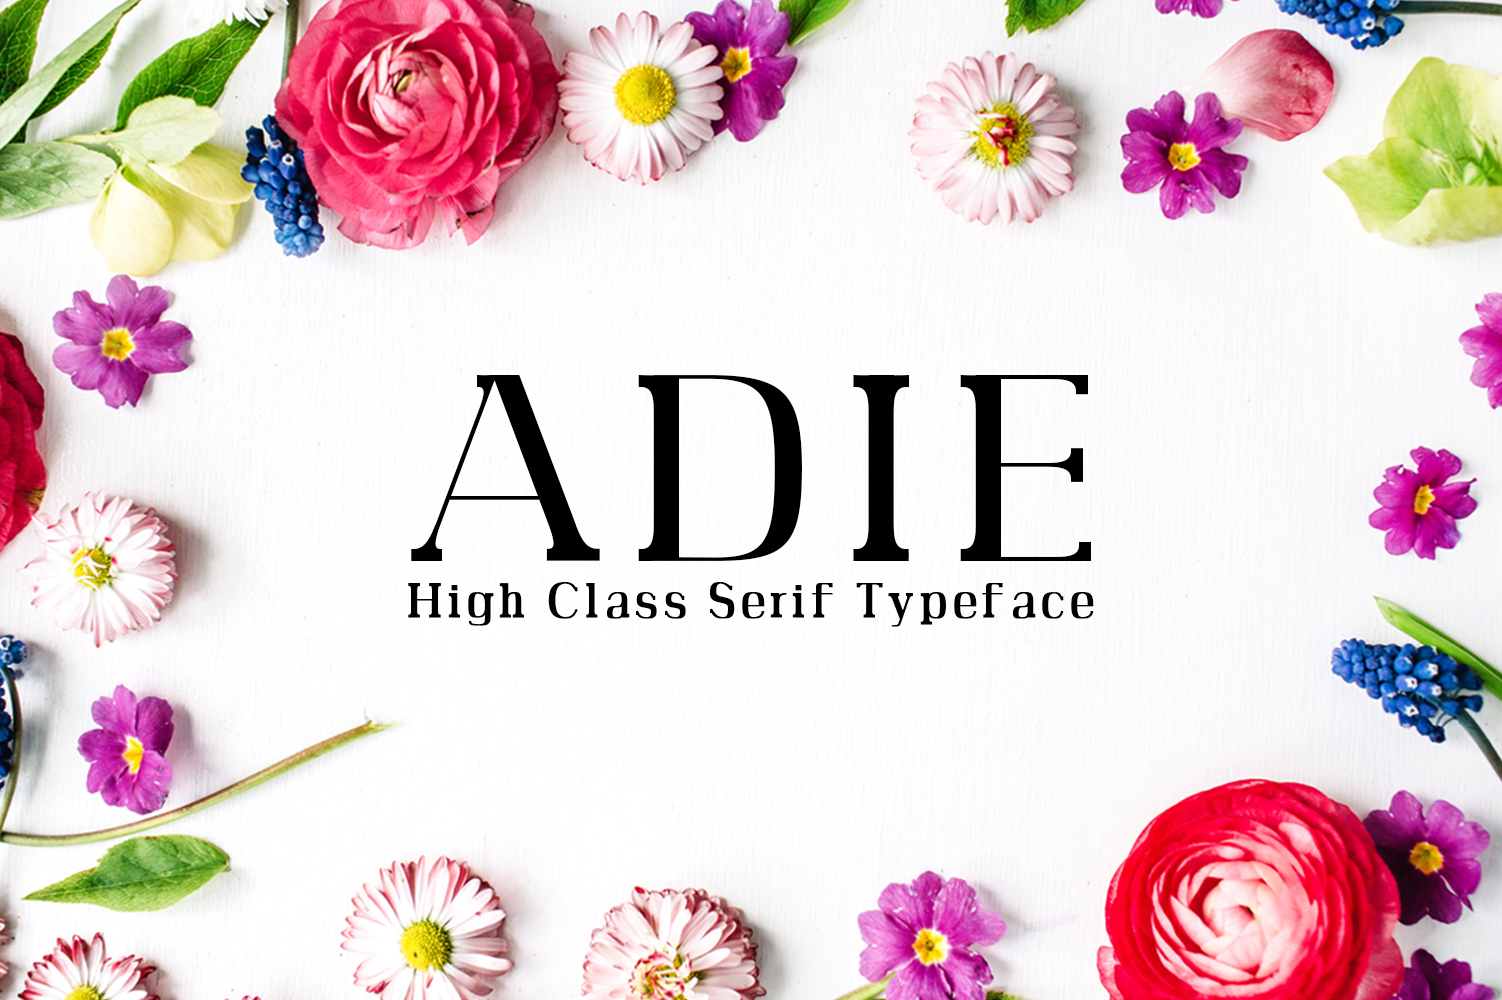 Adie High Class Serif Typeface example image 1